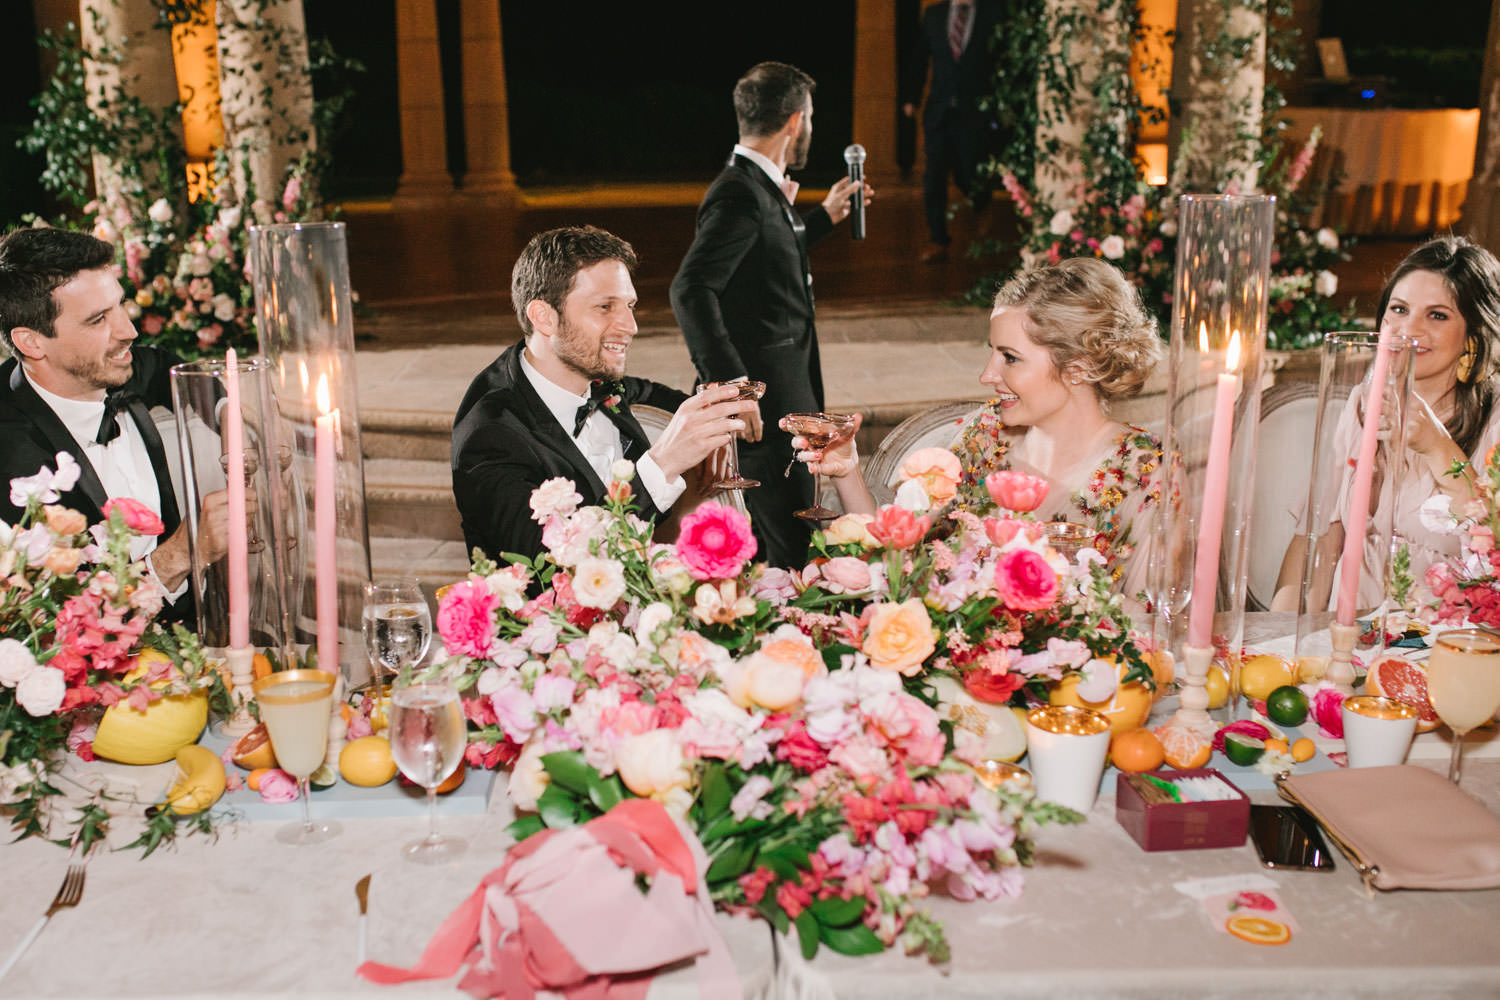 Best man toast on a stage with columns covered in climbing smilax with arrangement at the bottom consisting of roses, ranunculus, daffodils, peonies, and sweet peas. A Wedding Photographer's Fairmont Grand Del Mar Wedding